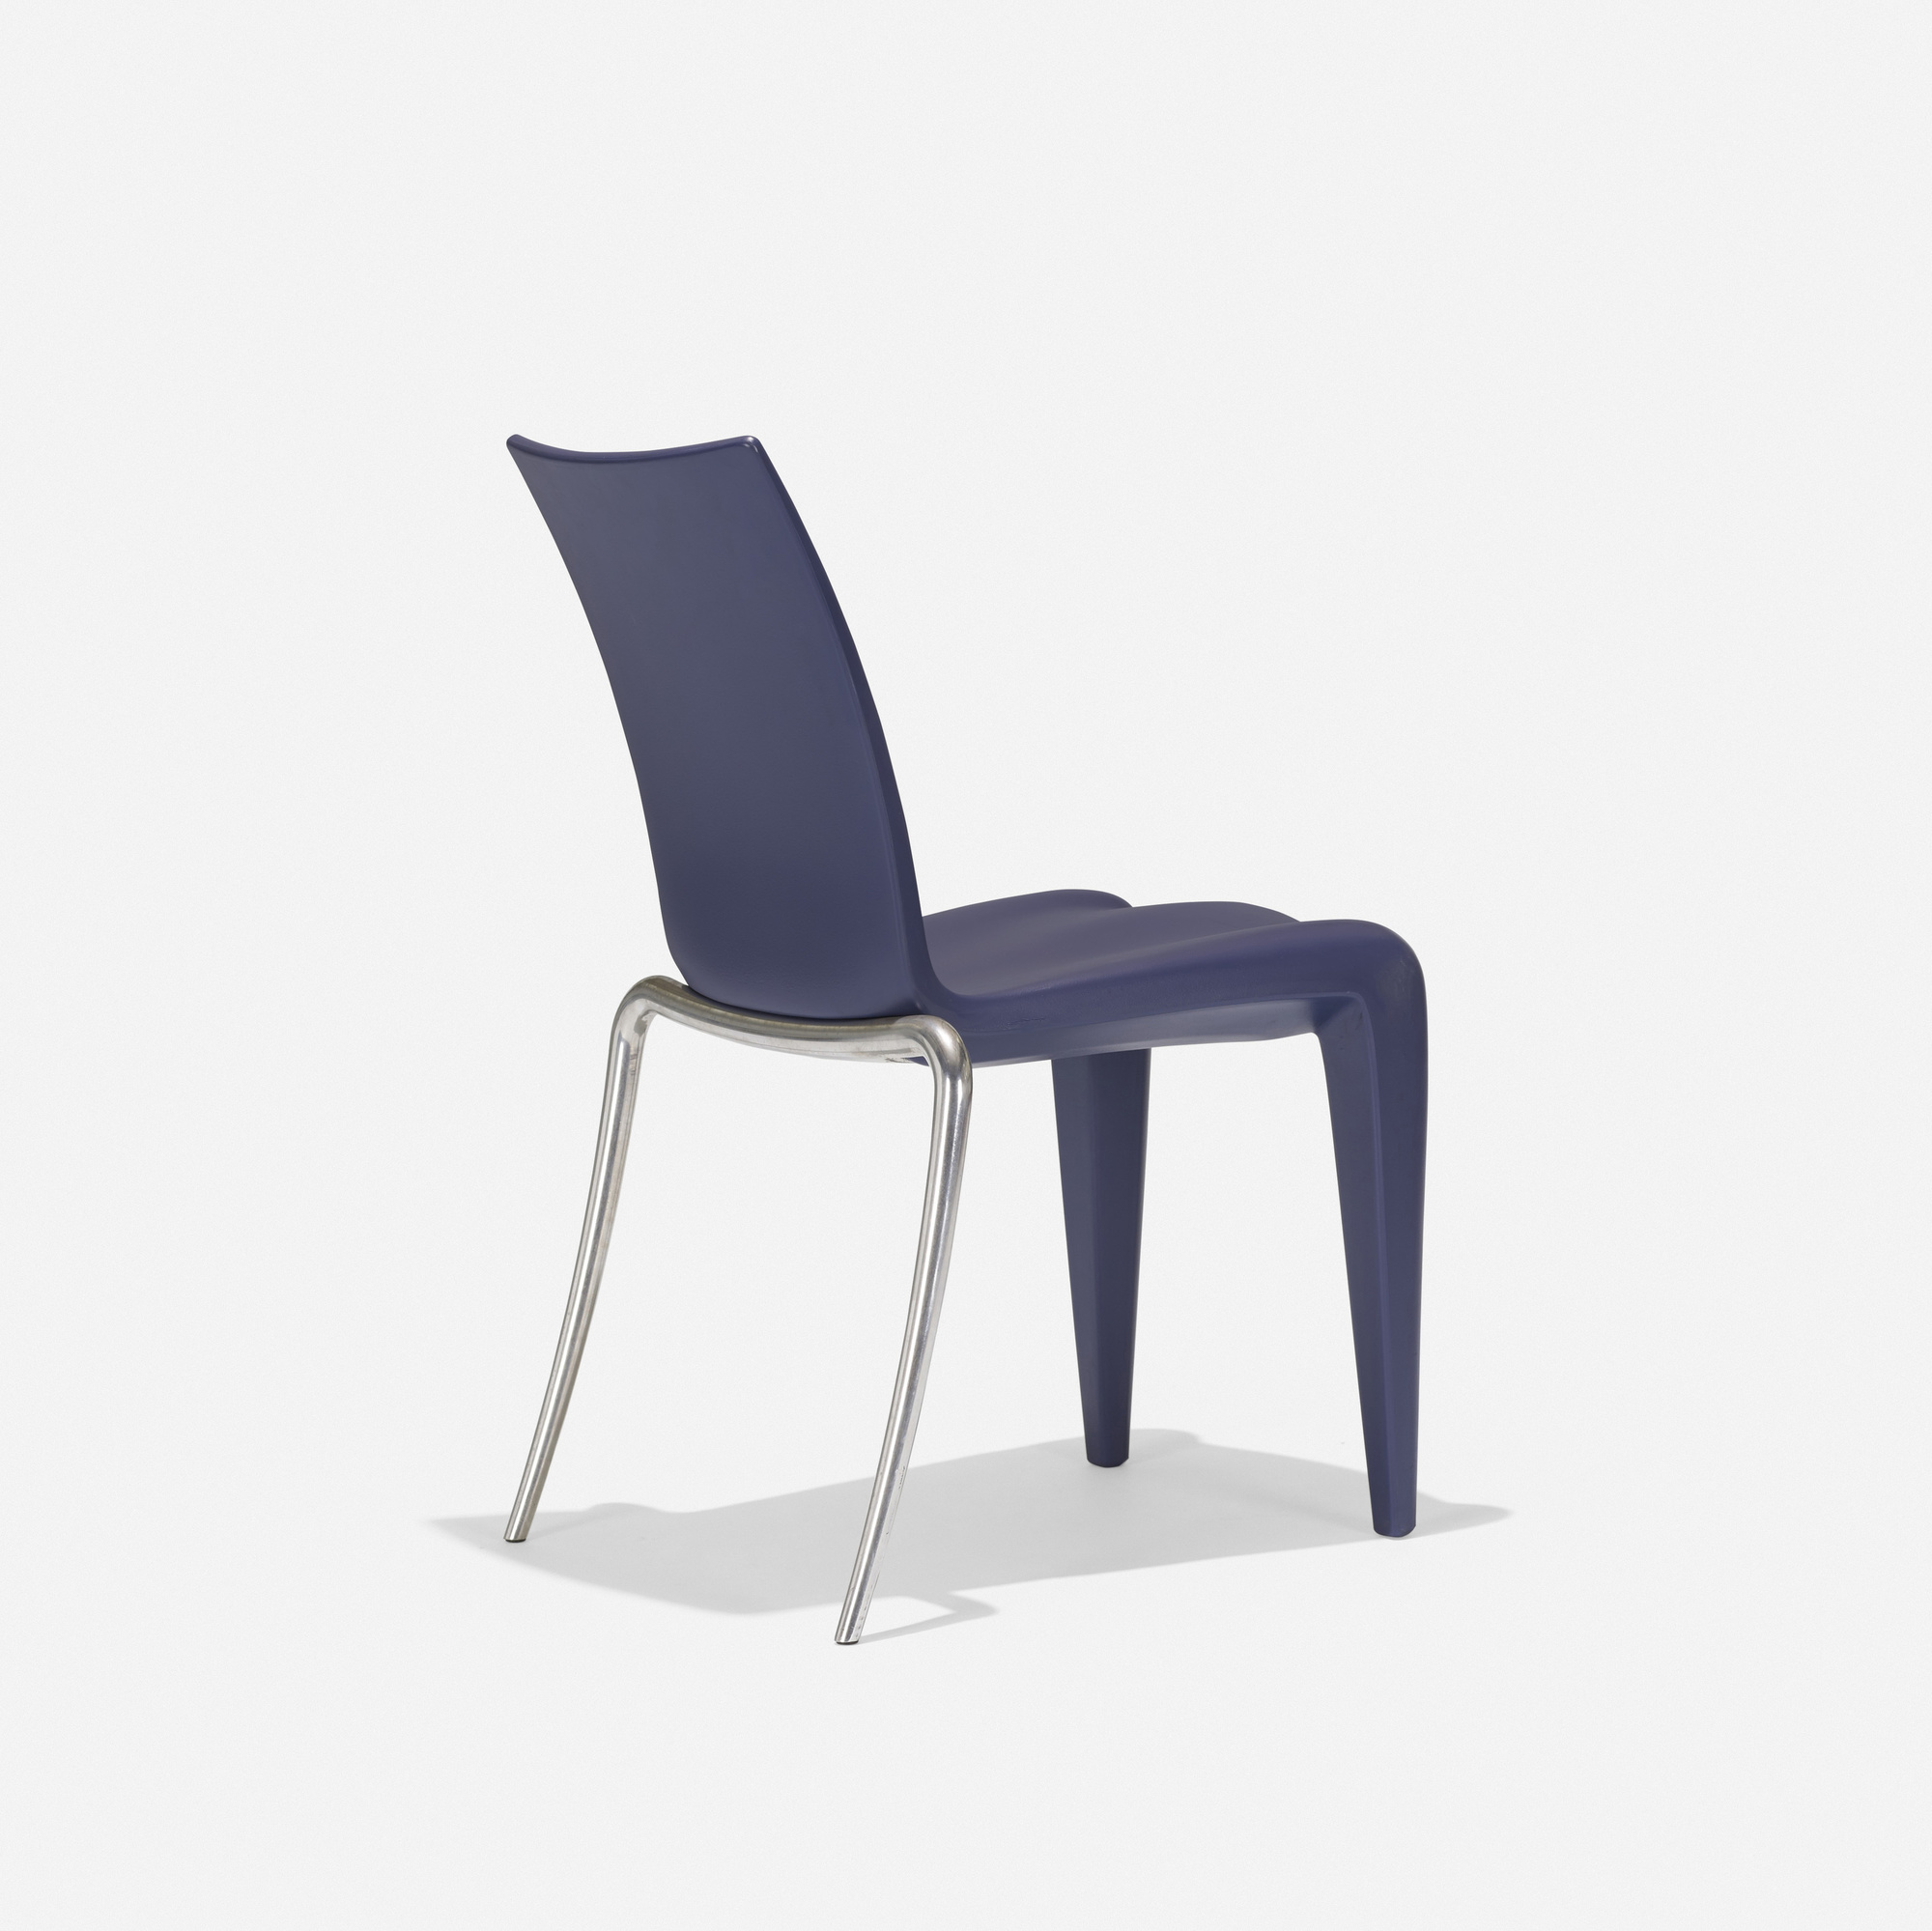 166: Philippe Starck / Louis 20 chair (3 of 4)